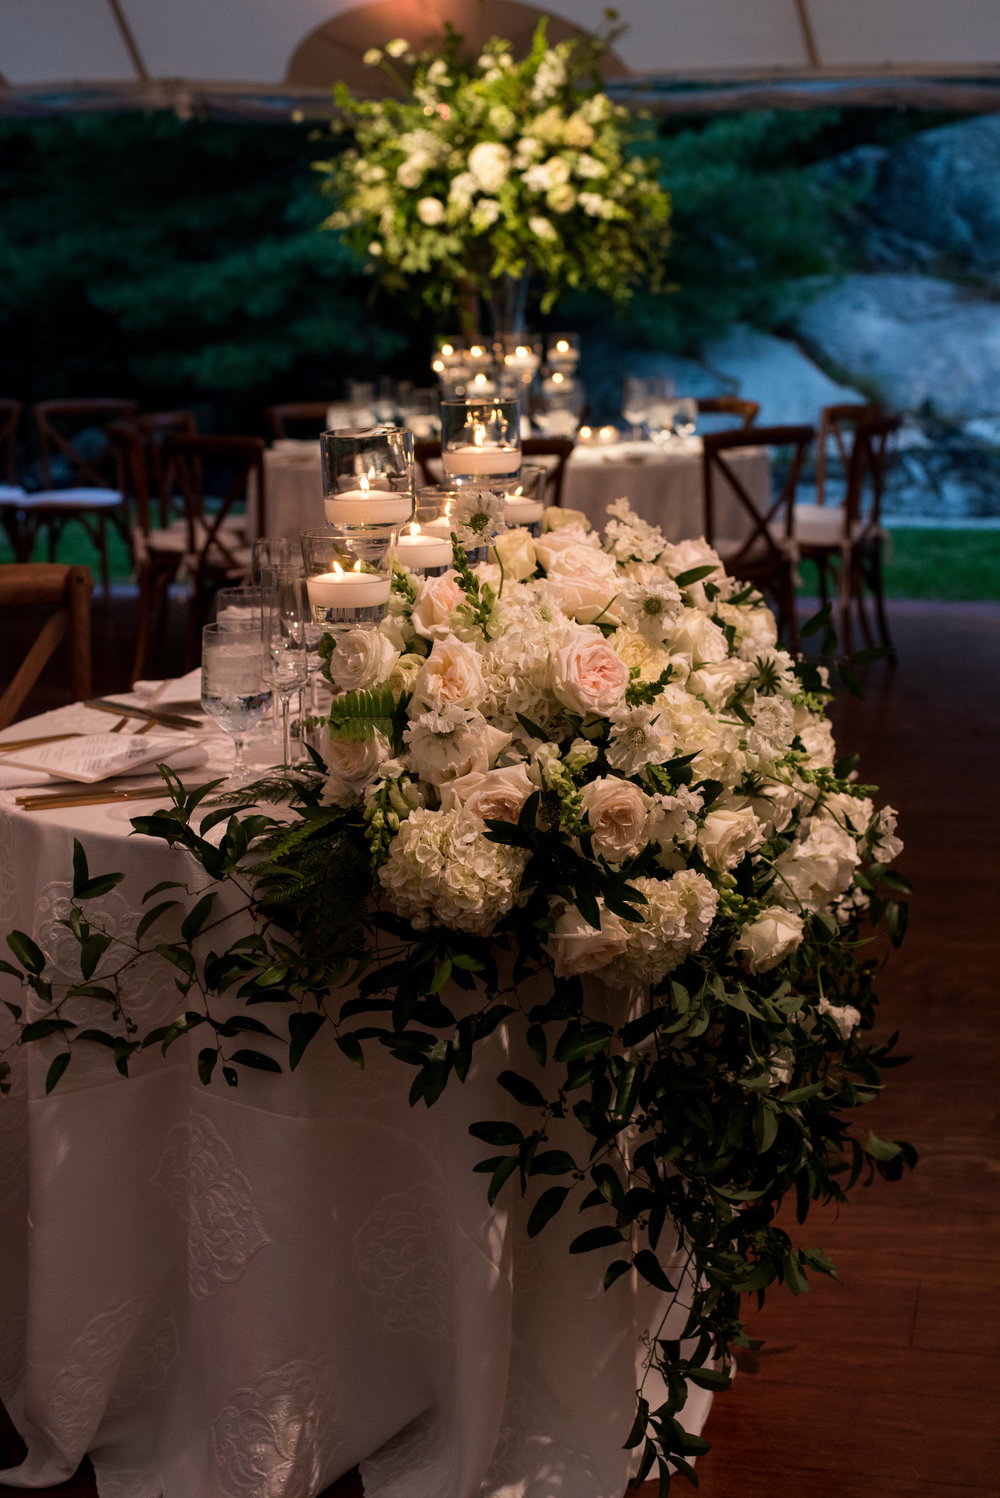 KATY-AND-TOM-HINGHAM-MASSACHUSETTS-WEDDING-DESTINATION-LUXURY-WEDDING-CATHOLIC-CHURCH-BACK-YARD-SPERRY-SAIL-CLOTH-TENT-COASTAL-CHIC-TIMELESS-ROMANTIC-FARM-TABLES-SWEATHEART-TABLE